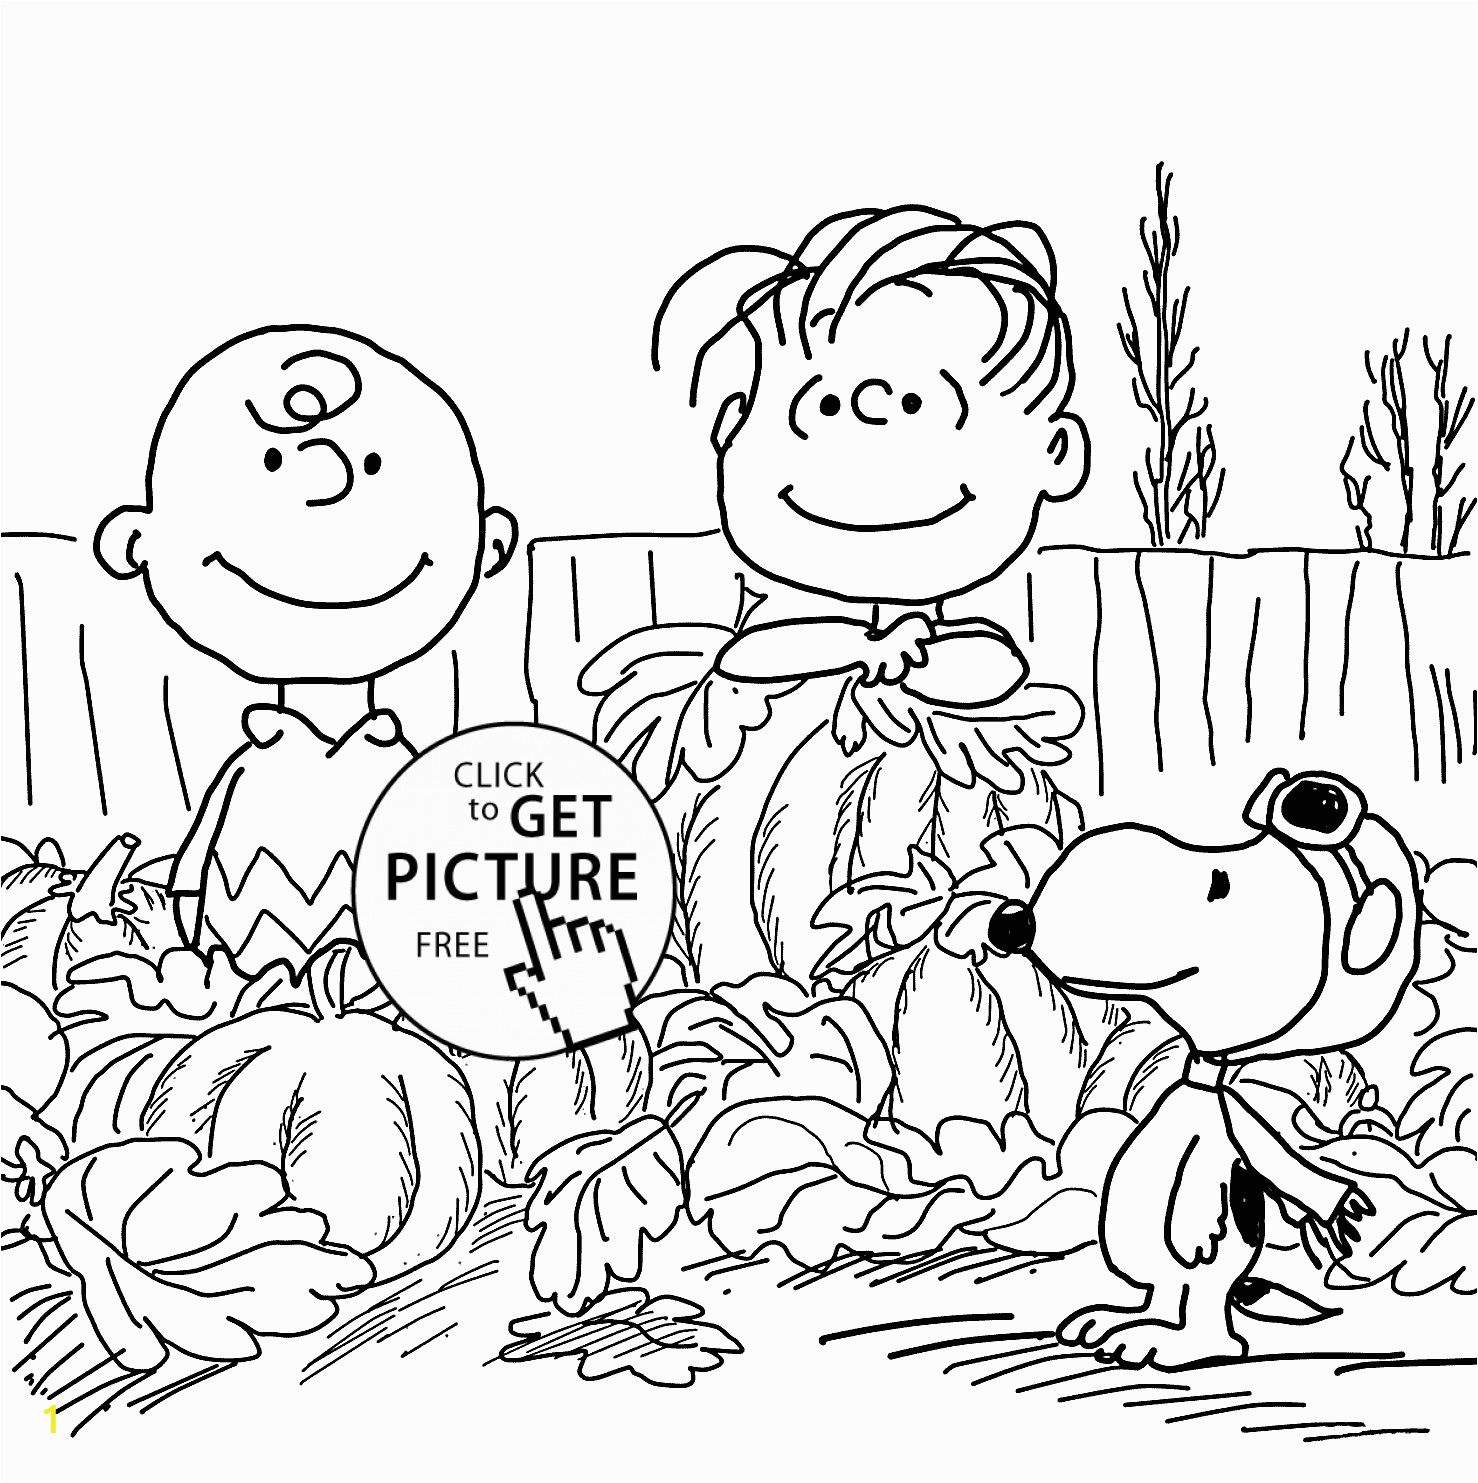 happy charlie brown and pumpkins coloring pages for kids printable free cartoons